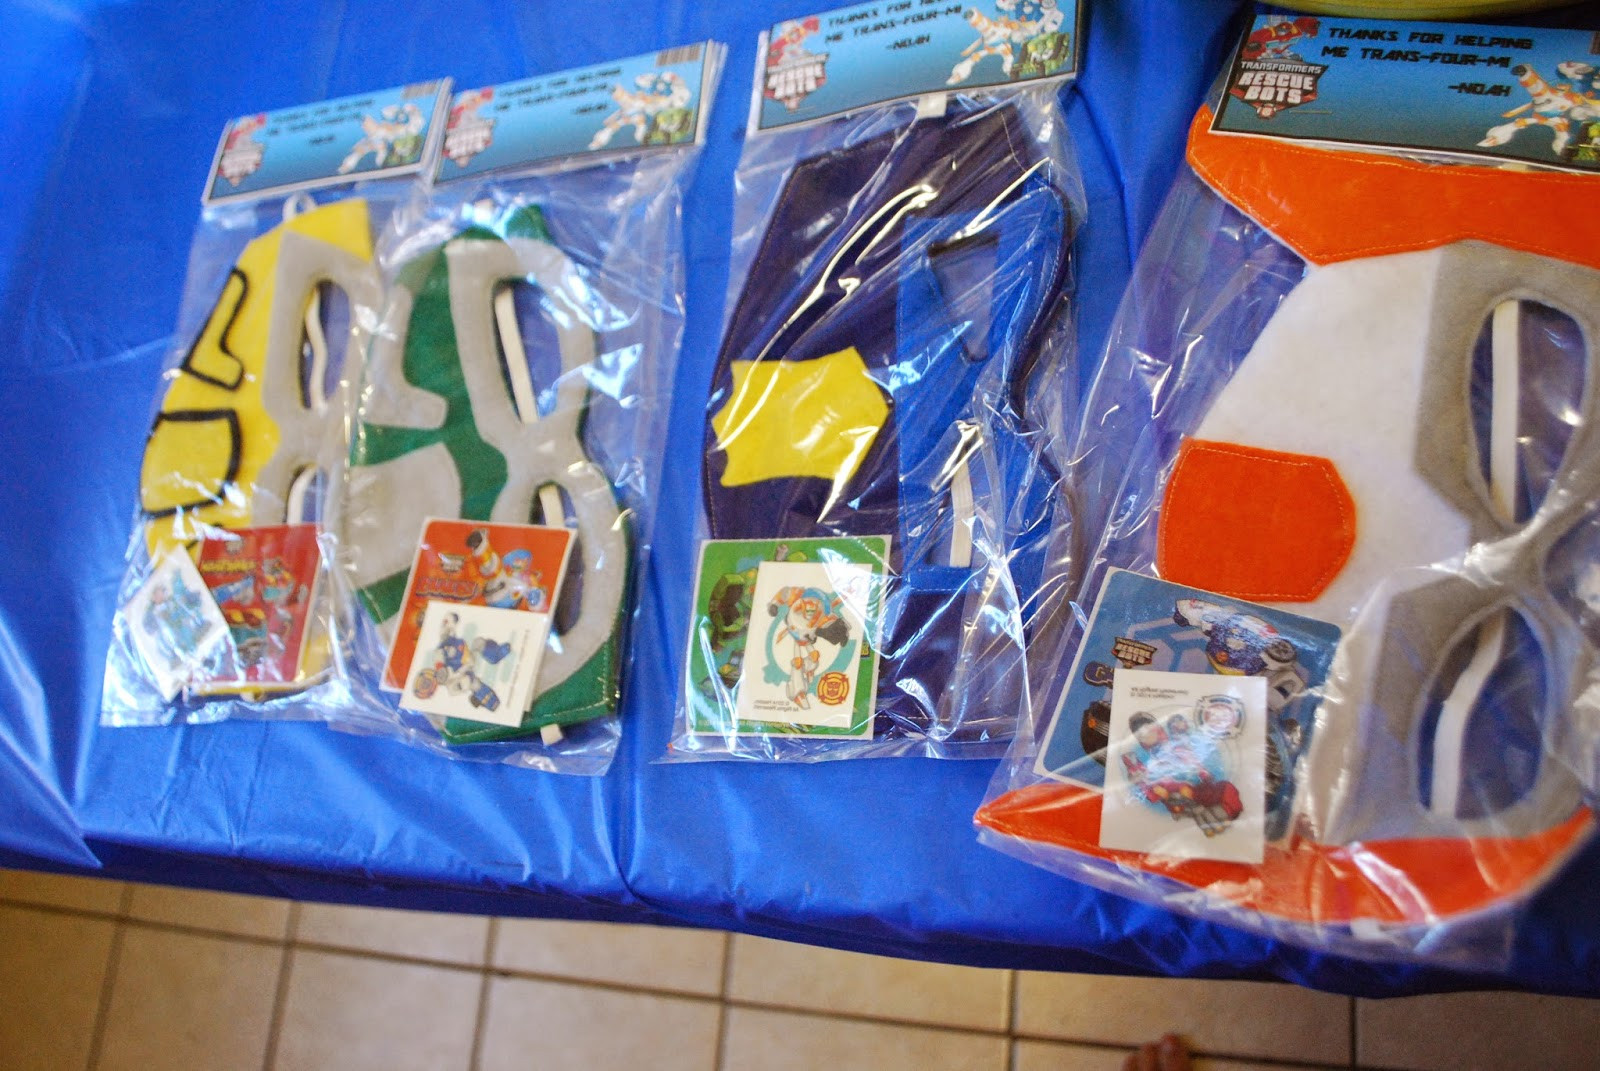 Best ideas about Rescue Bots Birthday Party . Save or Pin Simply Mangerchine Noah s Trans four mers Rescue Bots Party Now.